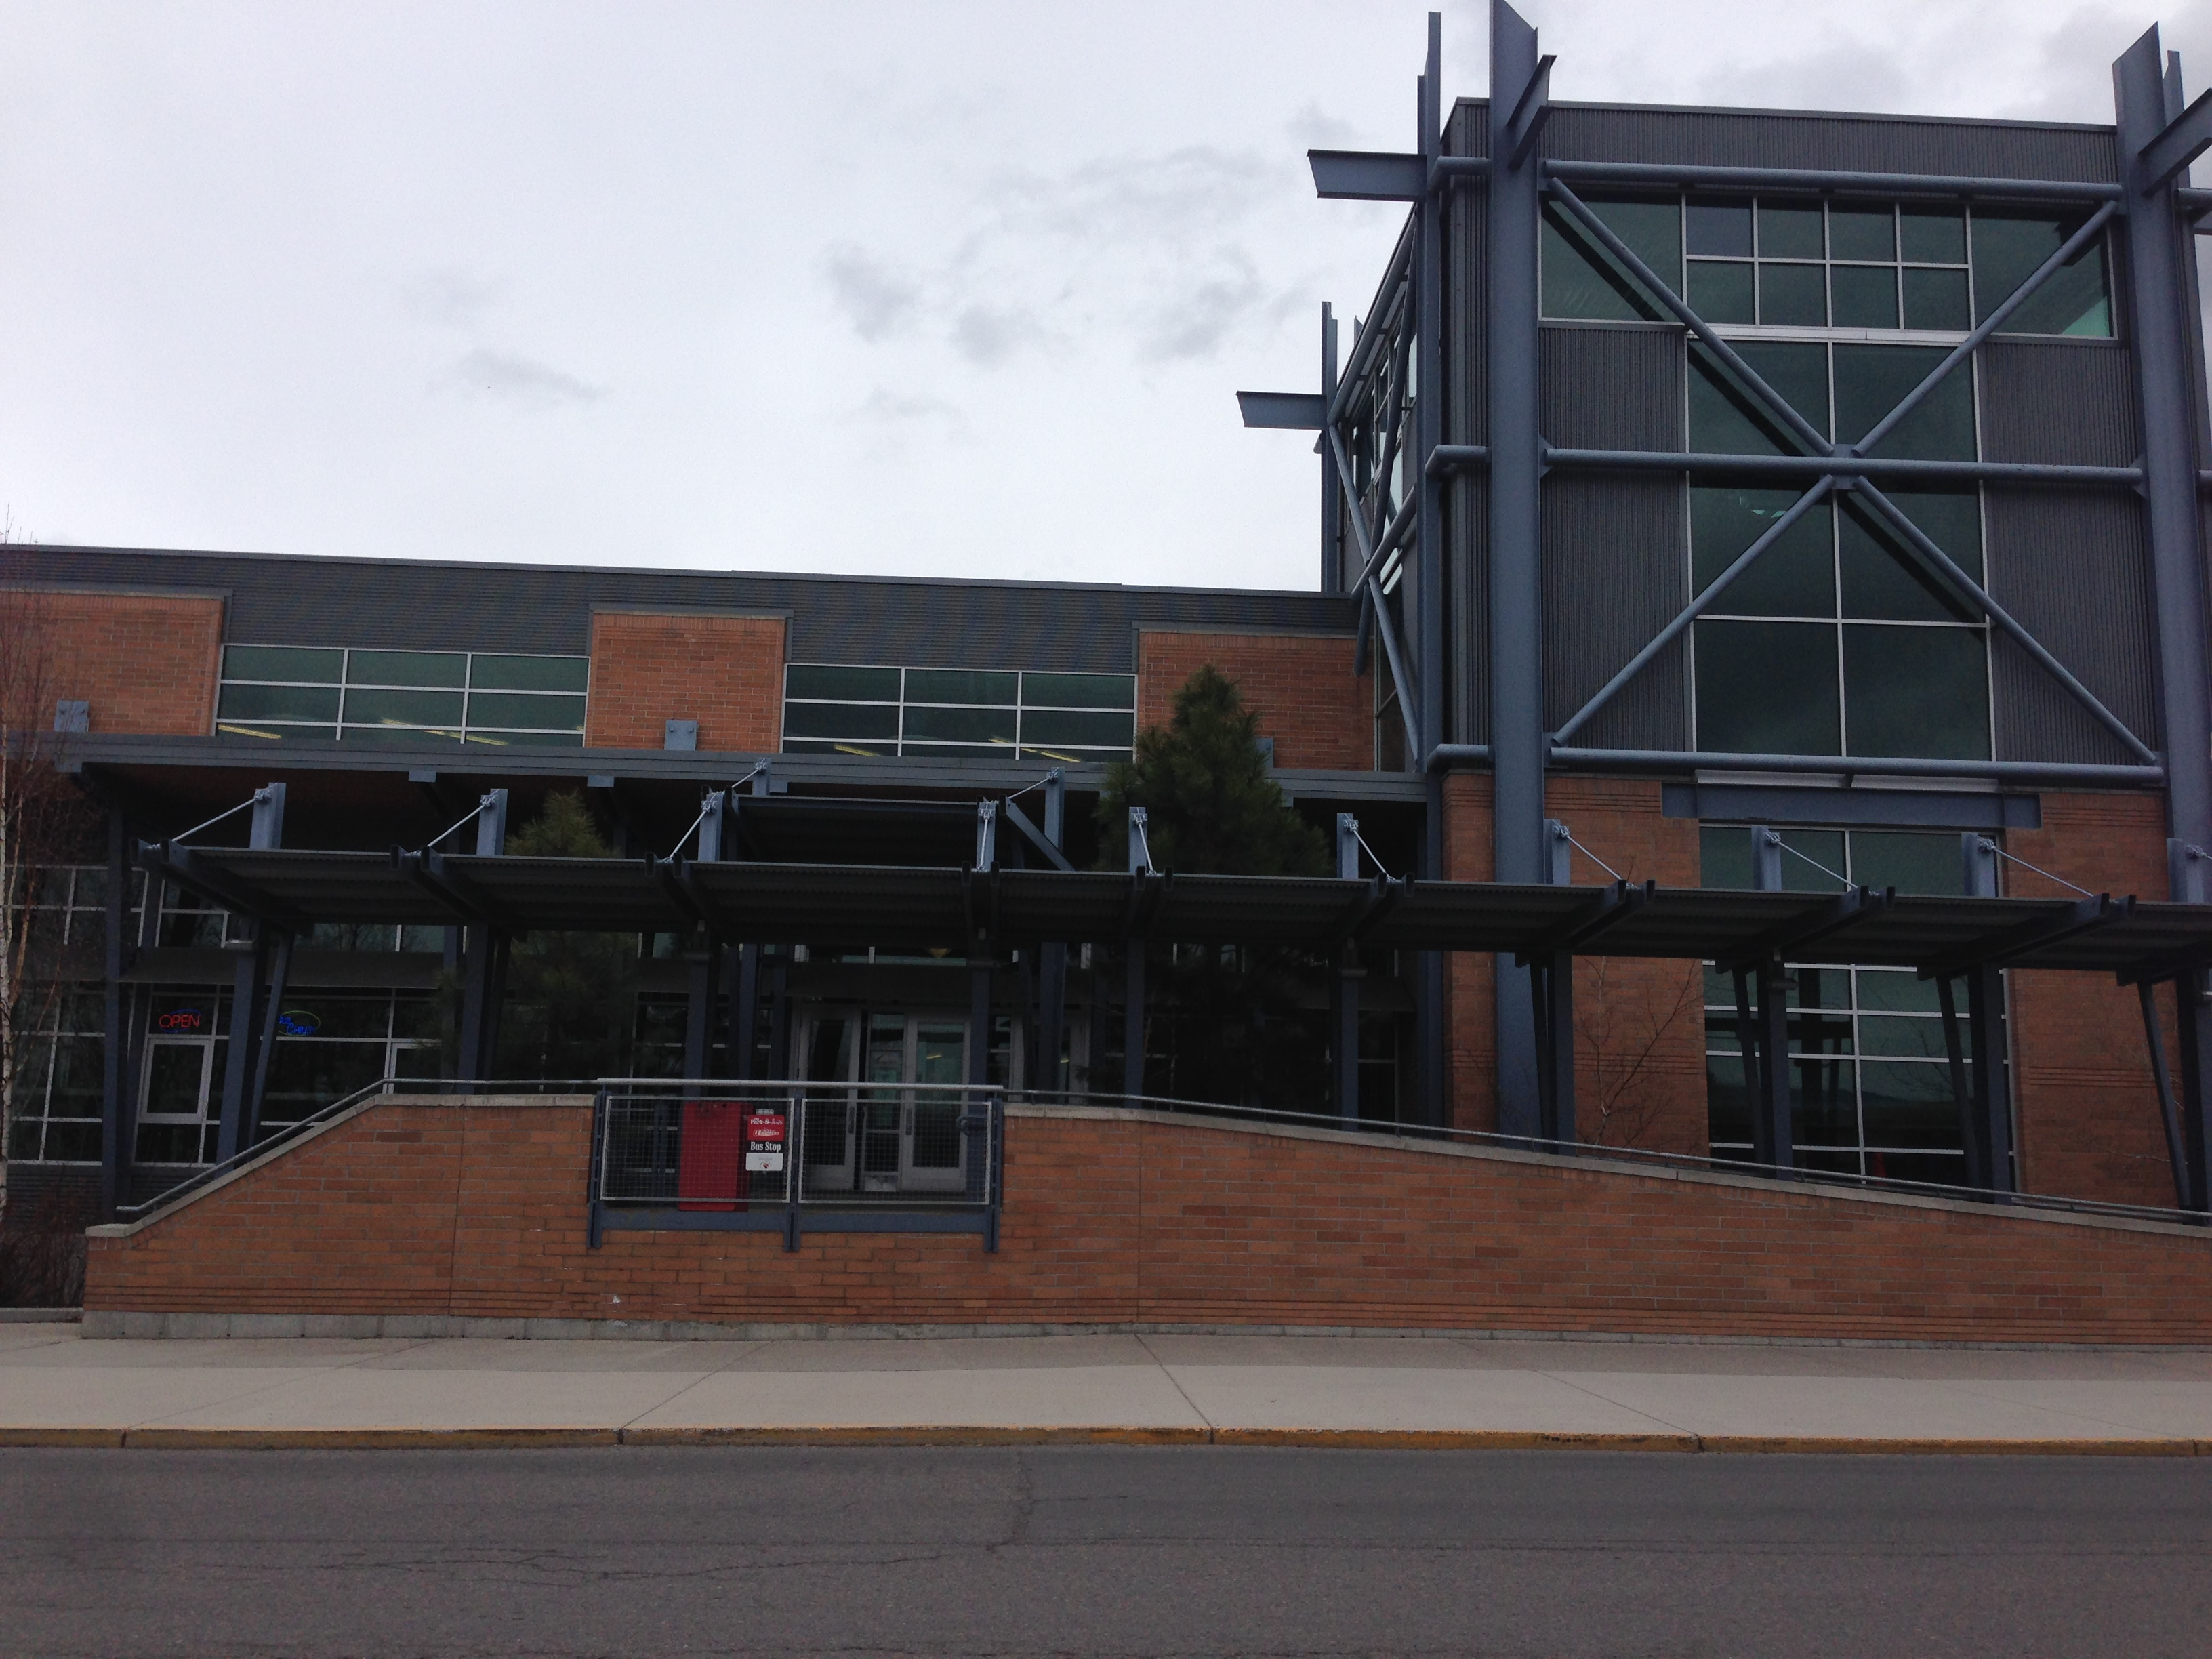 Out of my years in Missoula, I entered the doors of this facility more than any other place in the state.